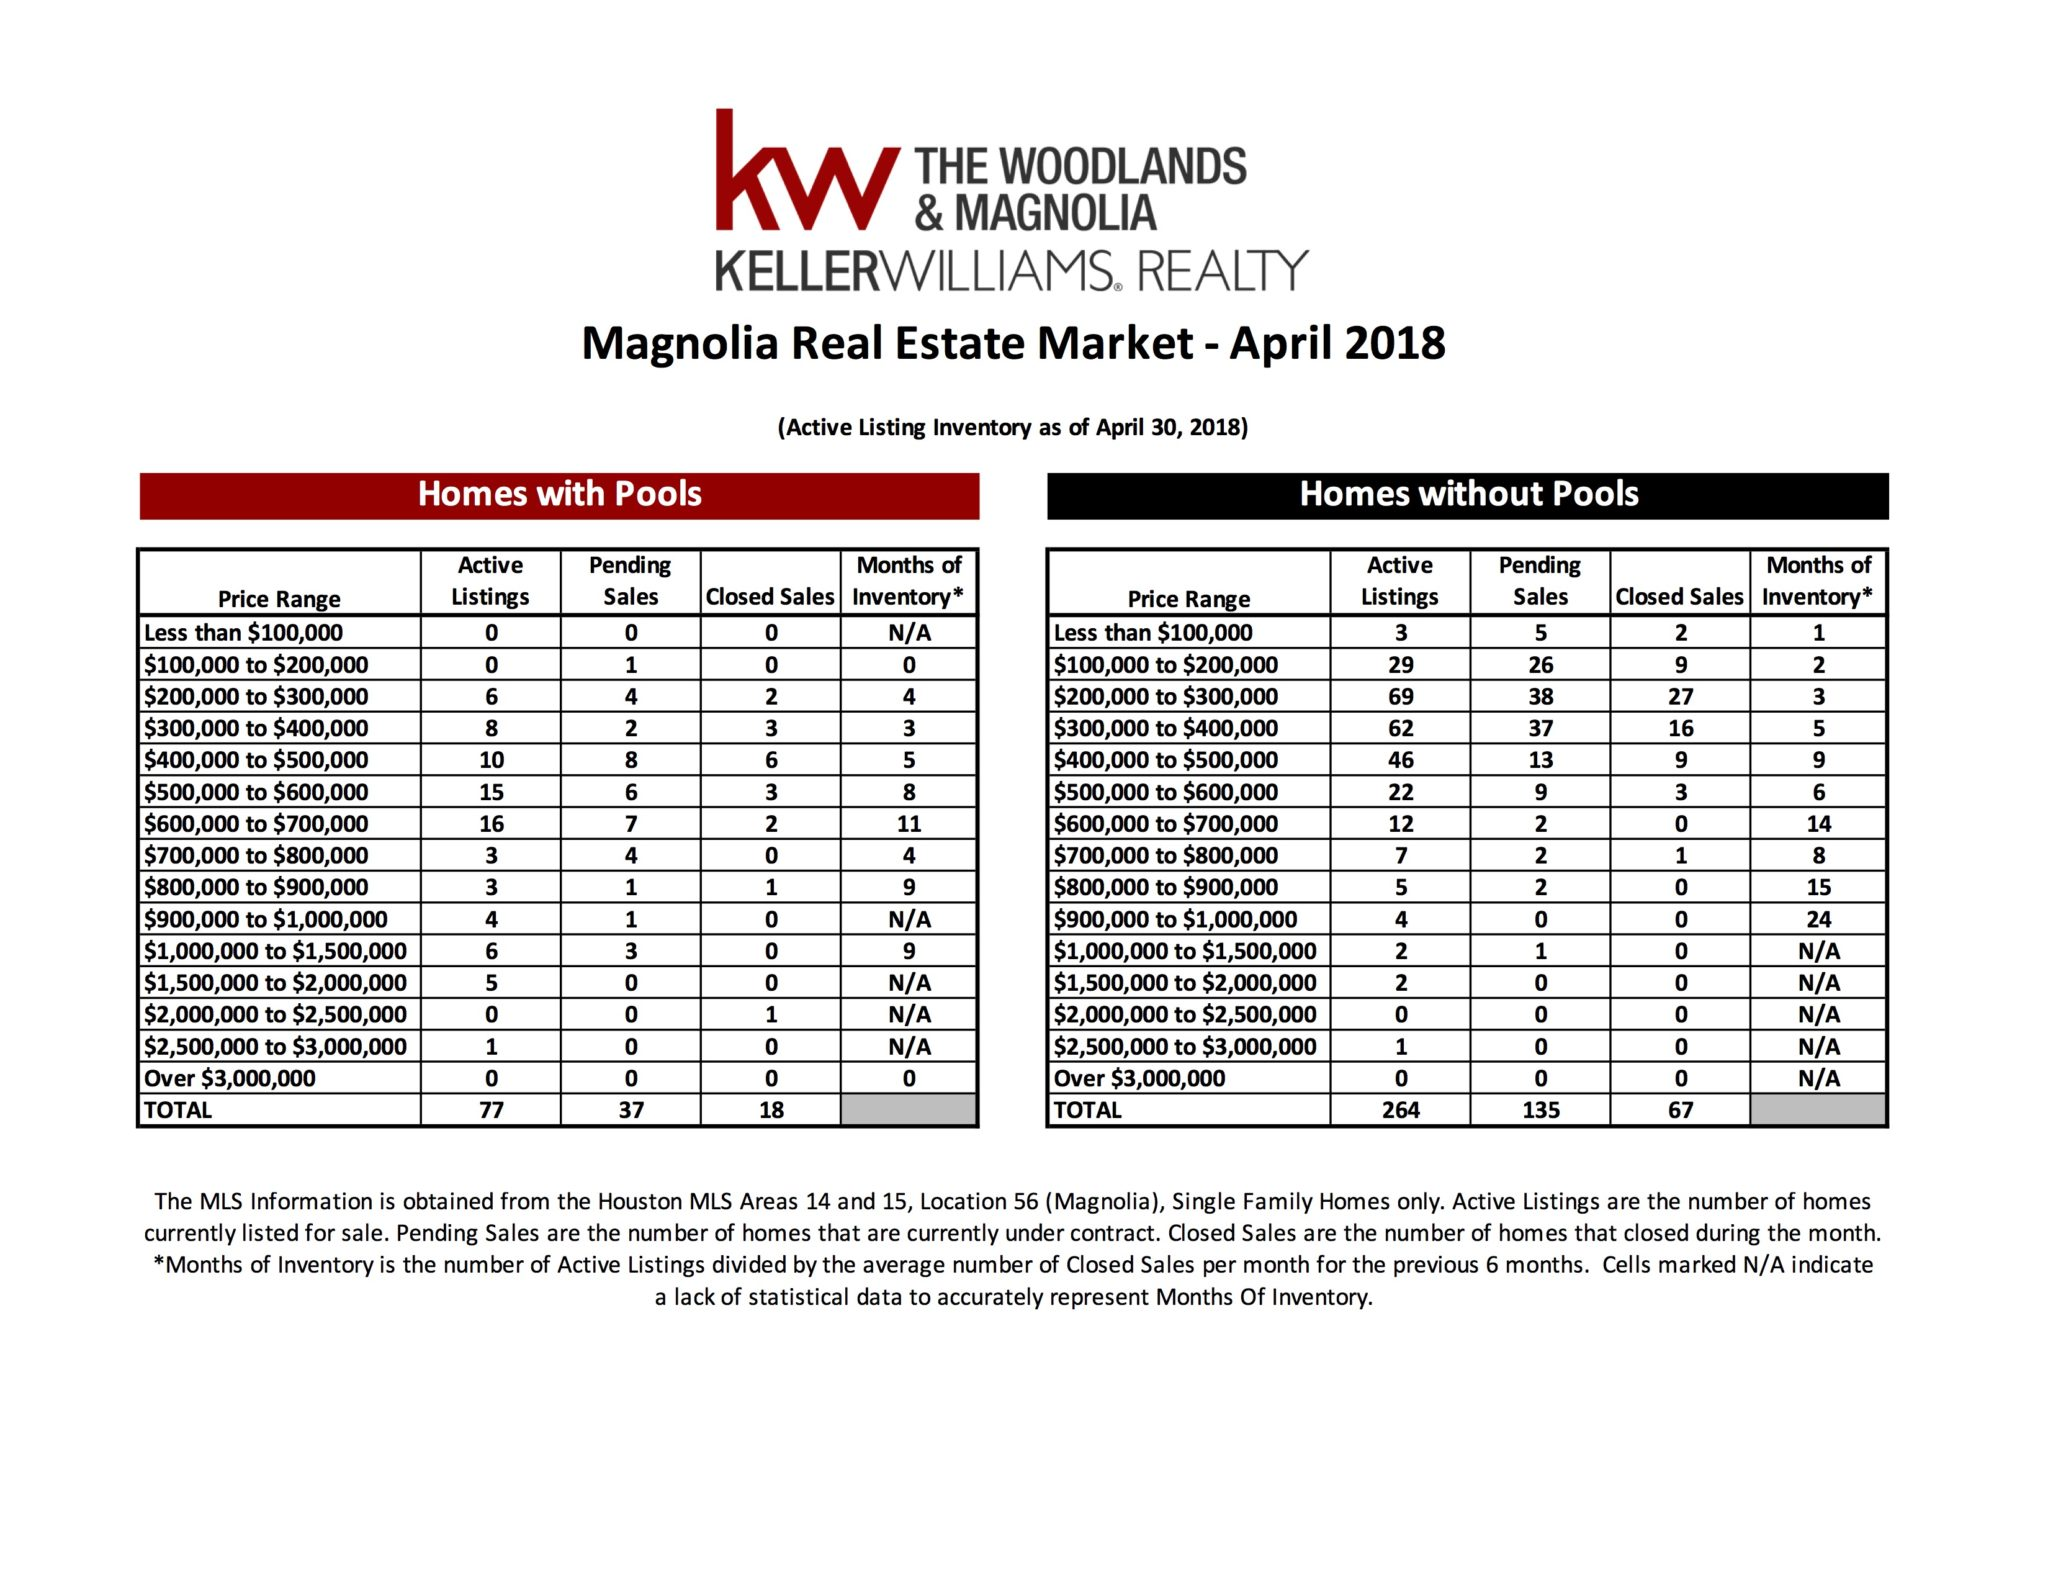 , April 2018 Marketwatch Report – Magnolia, KW Woodlands